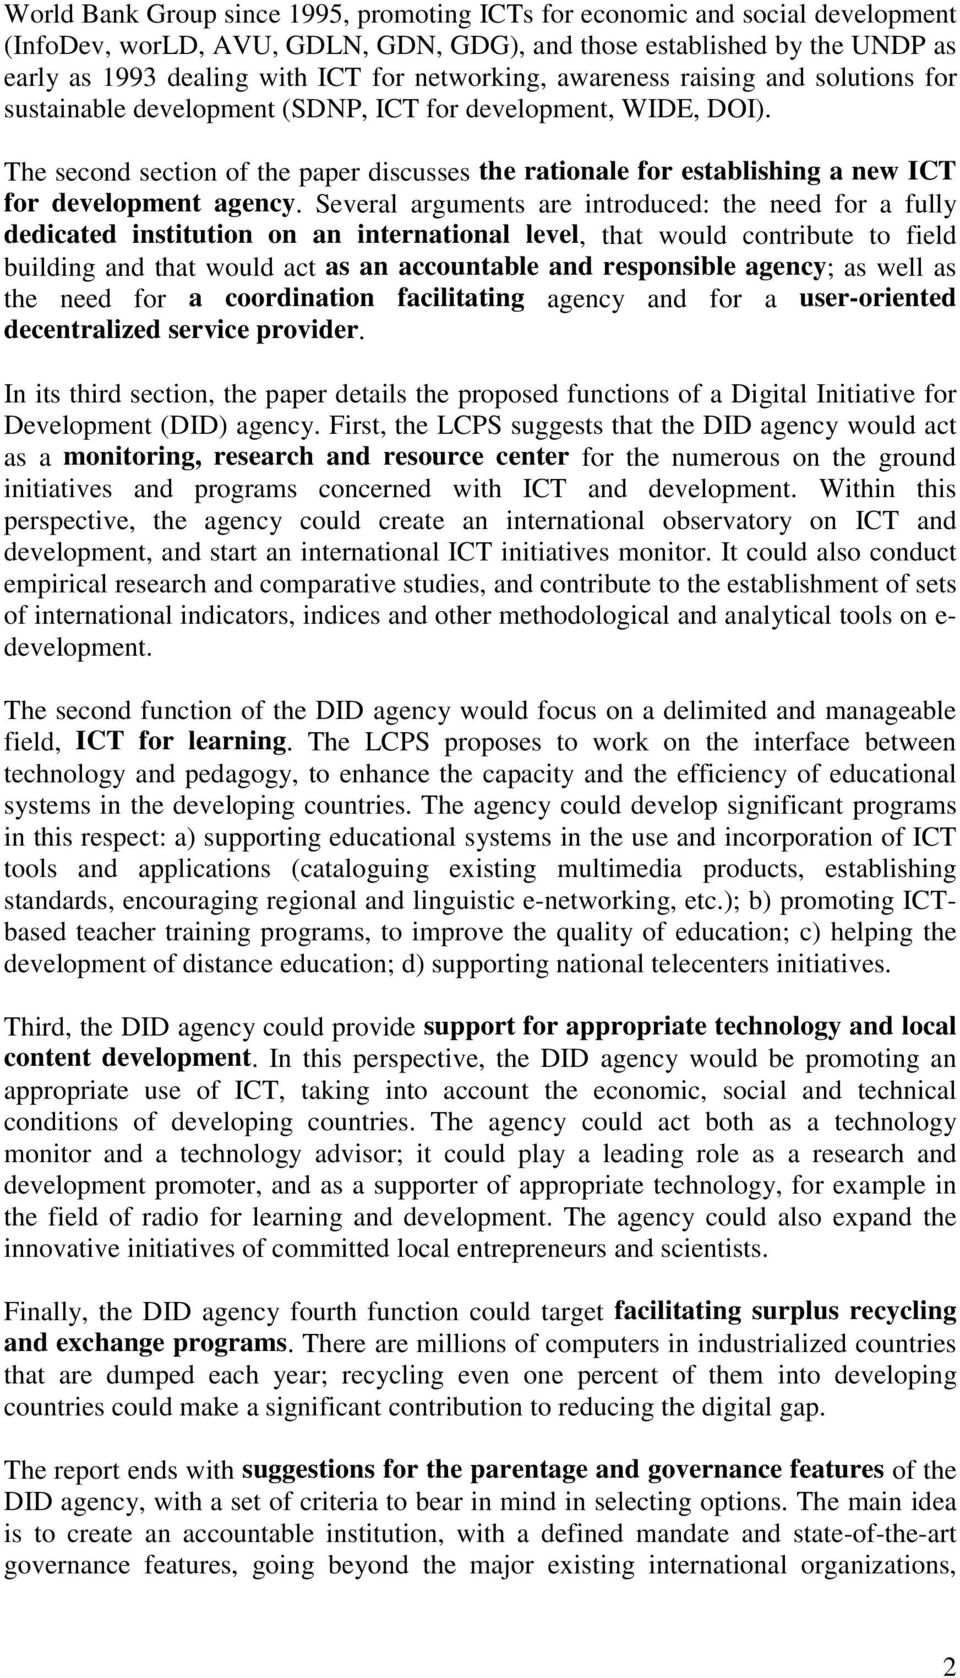 The second section of the paper discusses the rationale for establishing a new ICT for development agency.